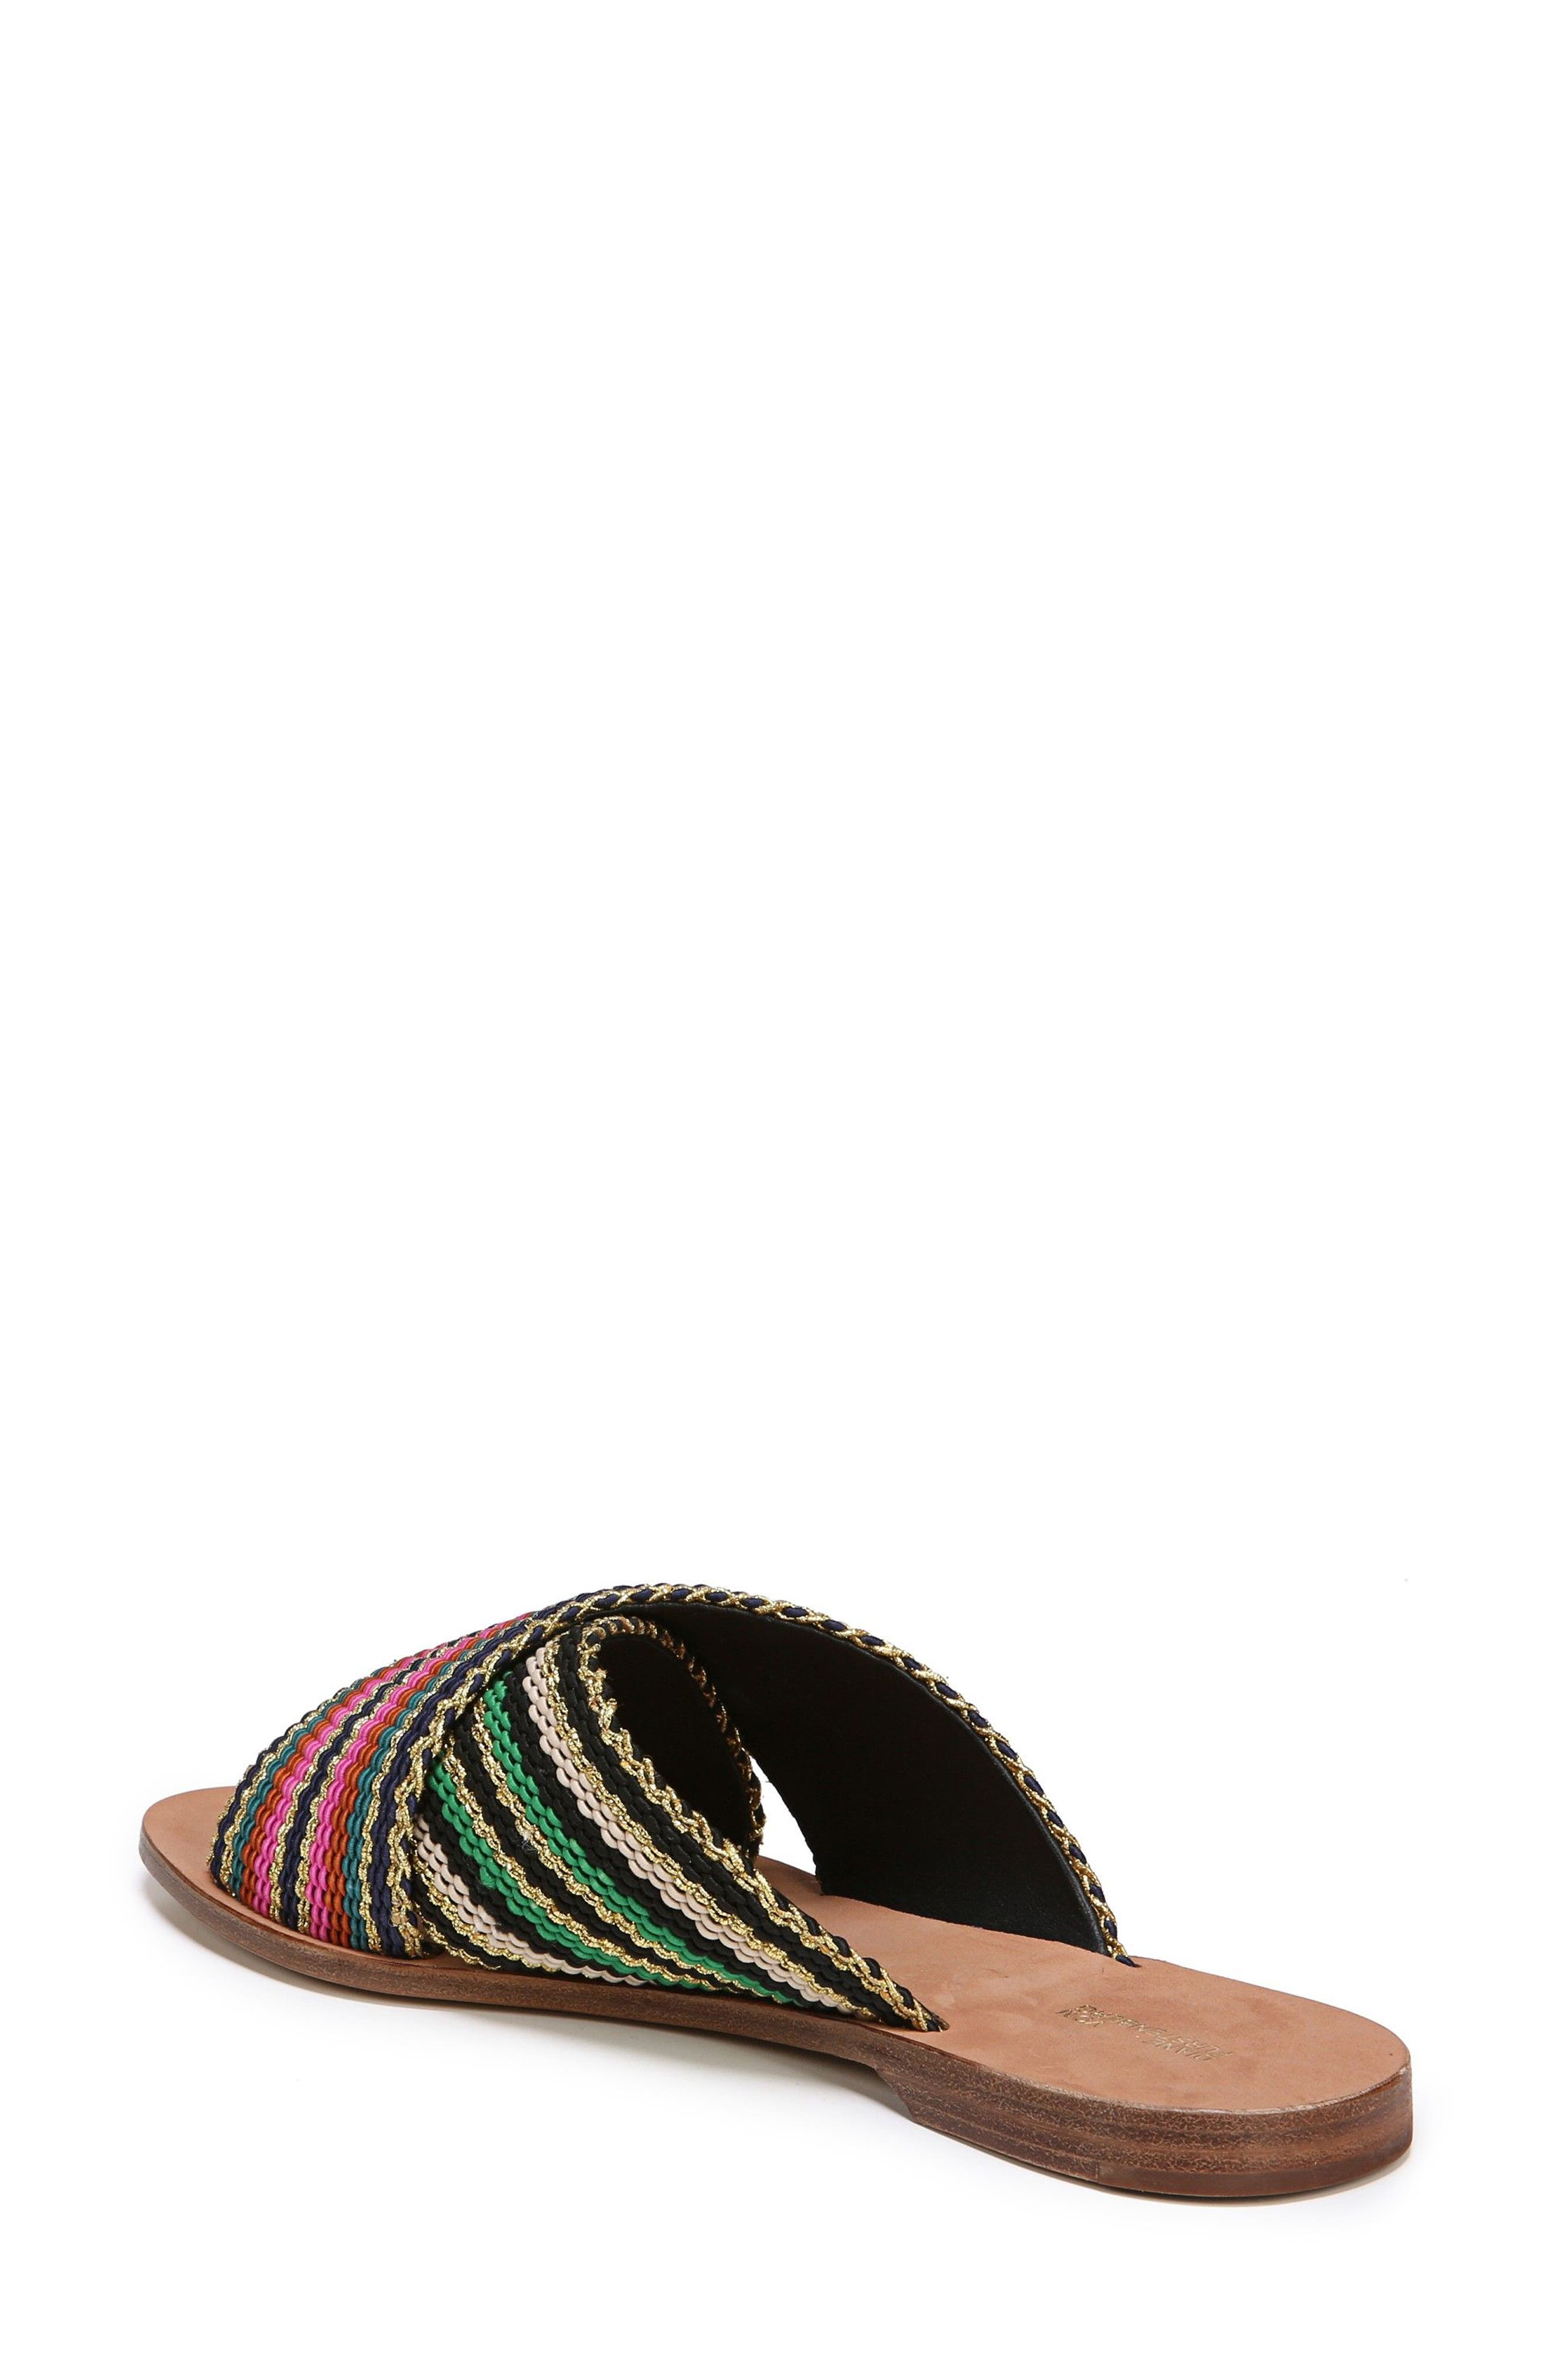 Cindi Woven Slide Sandal,                             Alternate thumbnail 2, color,                             BLACK/ GOLD